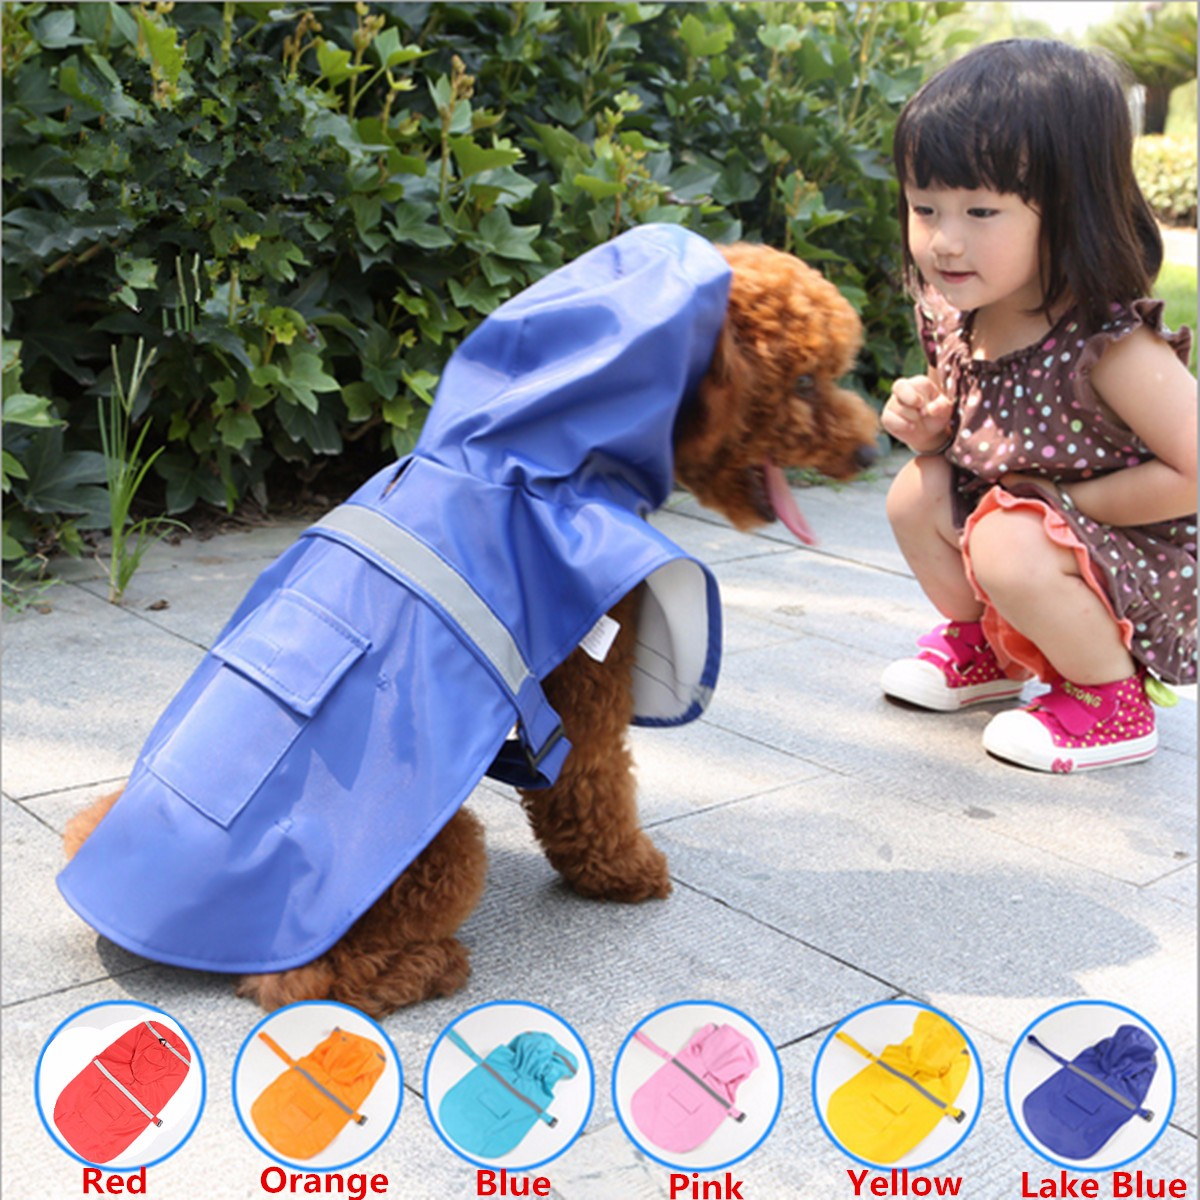 Waterproof Dog Raincoat SM Pet Clothes Hoodie petrainwear Jacket Poncho Outdoor with Reflective Strip For Dog